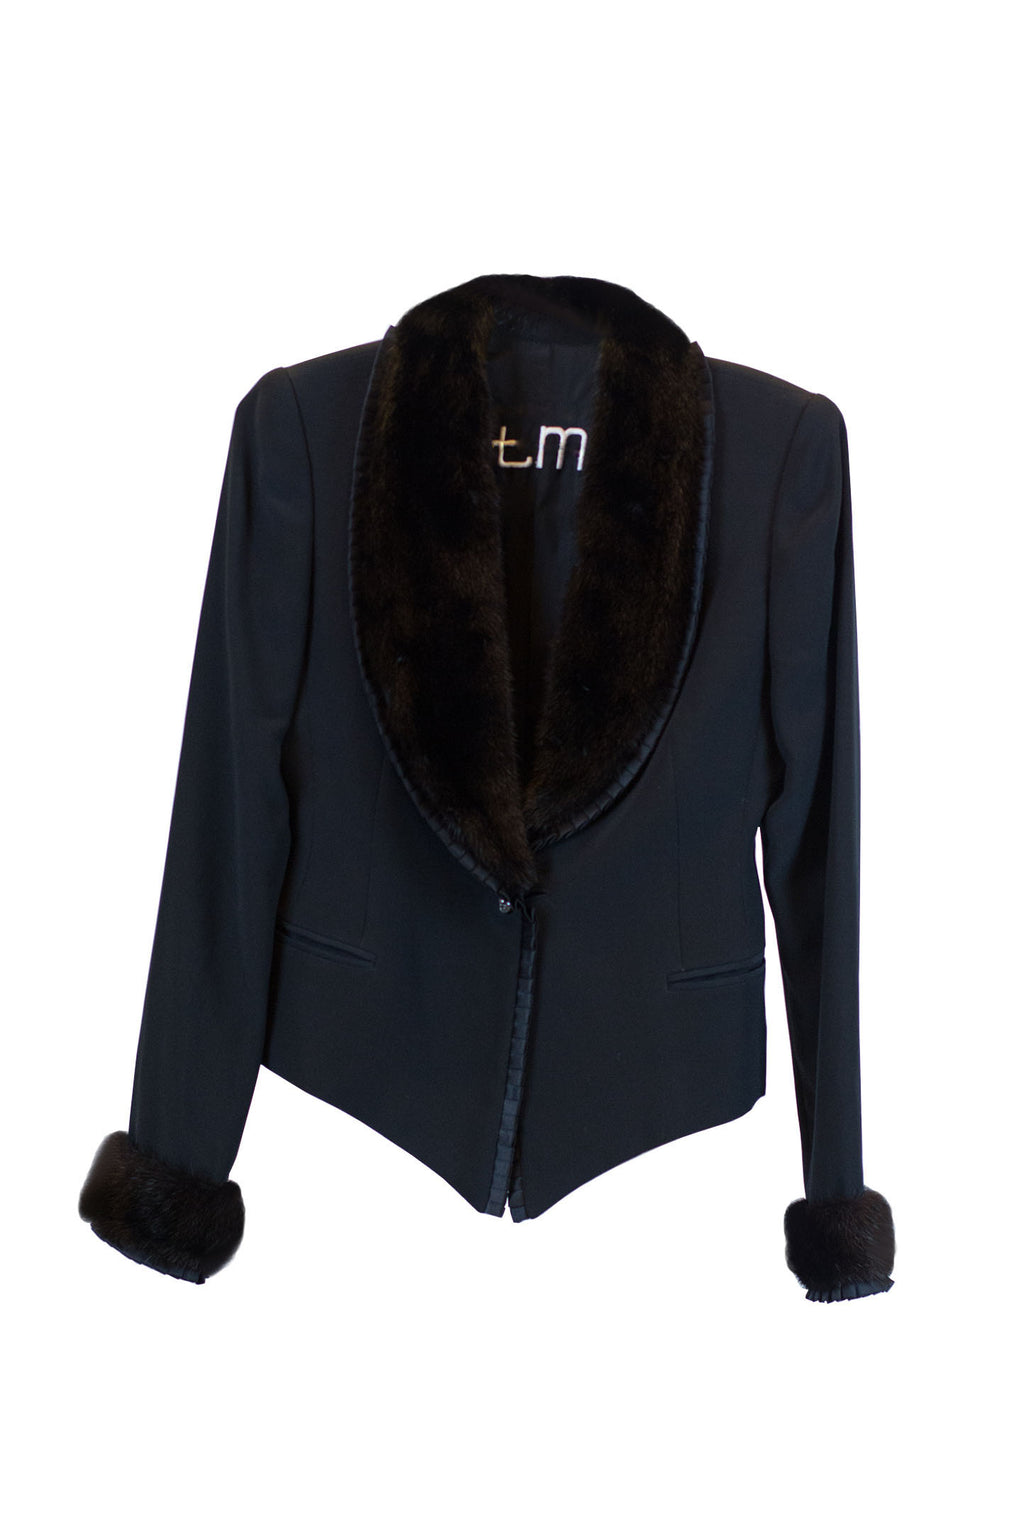 Toni Miranda - Black Jacket Made Of Silk Crepe With Pleates in satin and Black Mink Size Small